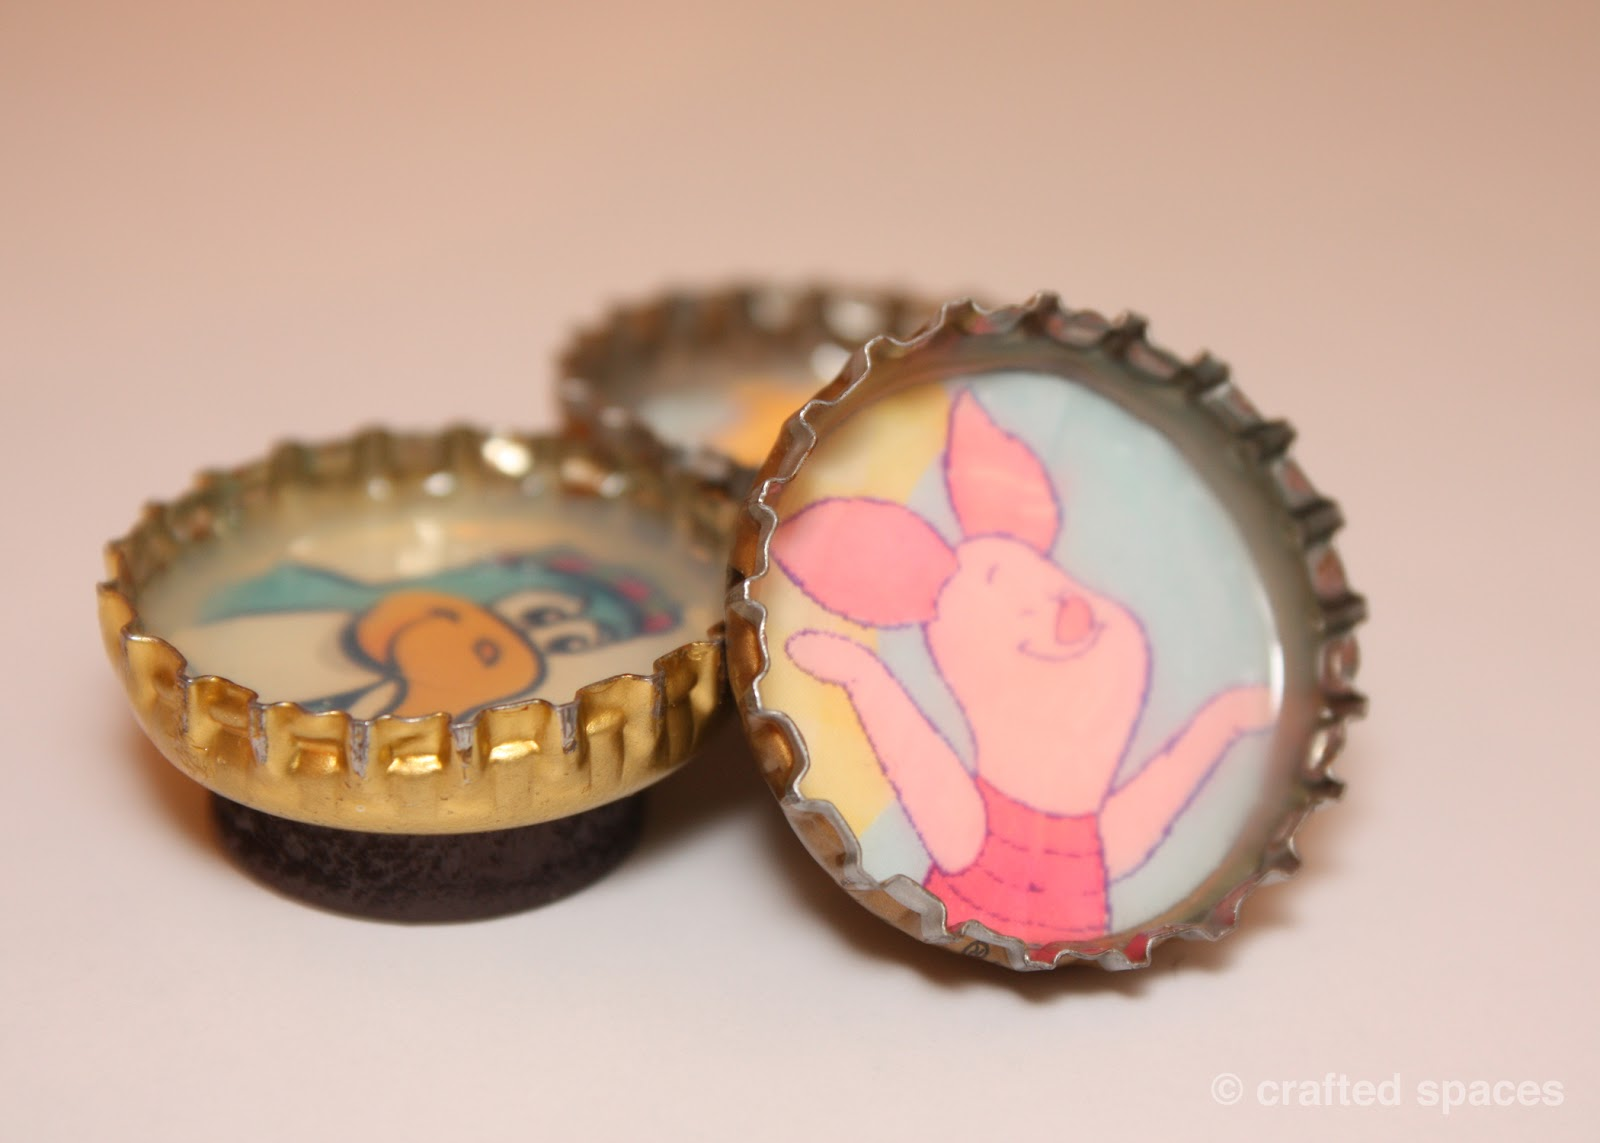 Crafted spaces crafty idea bottle cap magnet for How to make bottle cap crafts